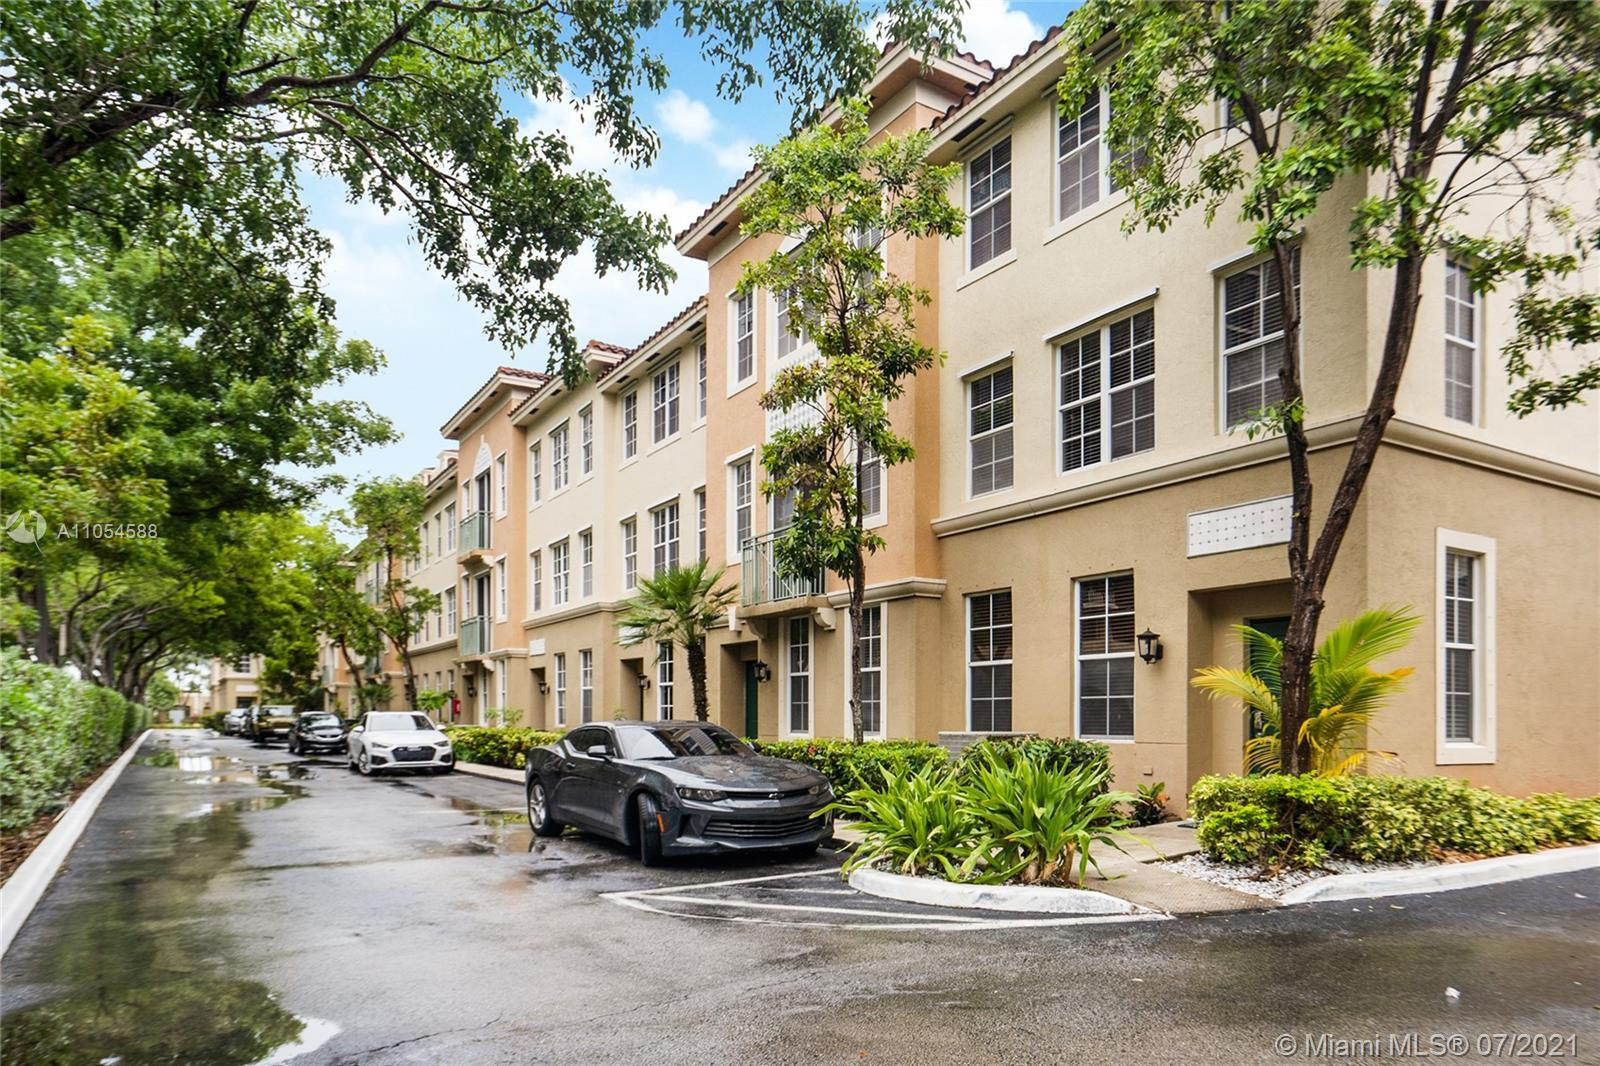 Bright and spacious townhome with an open modern kitchen and appliances, 3 bedrooms, 3 full & 1 half